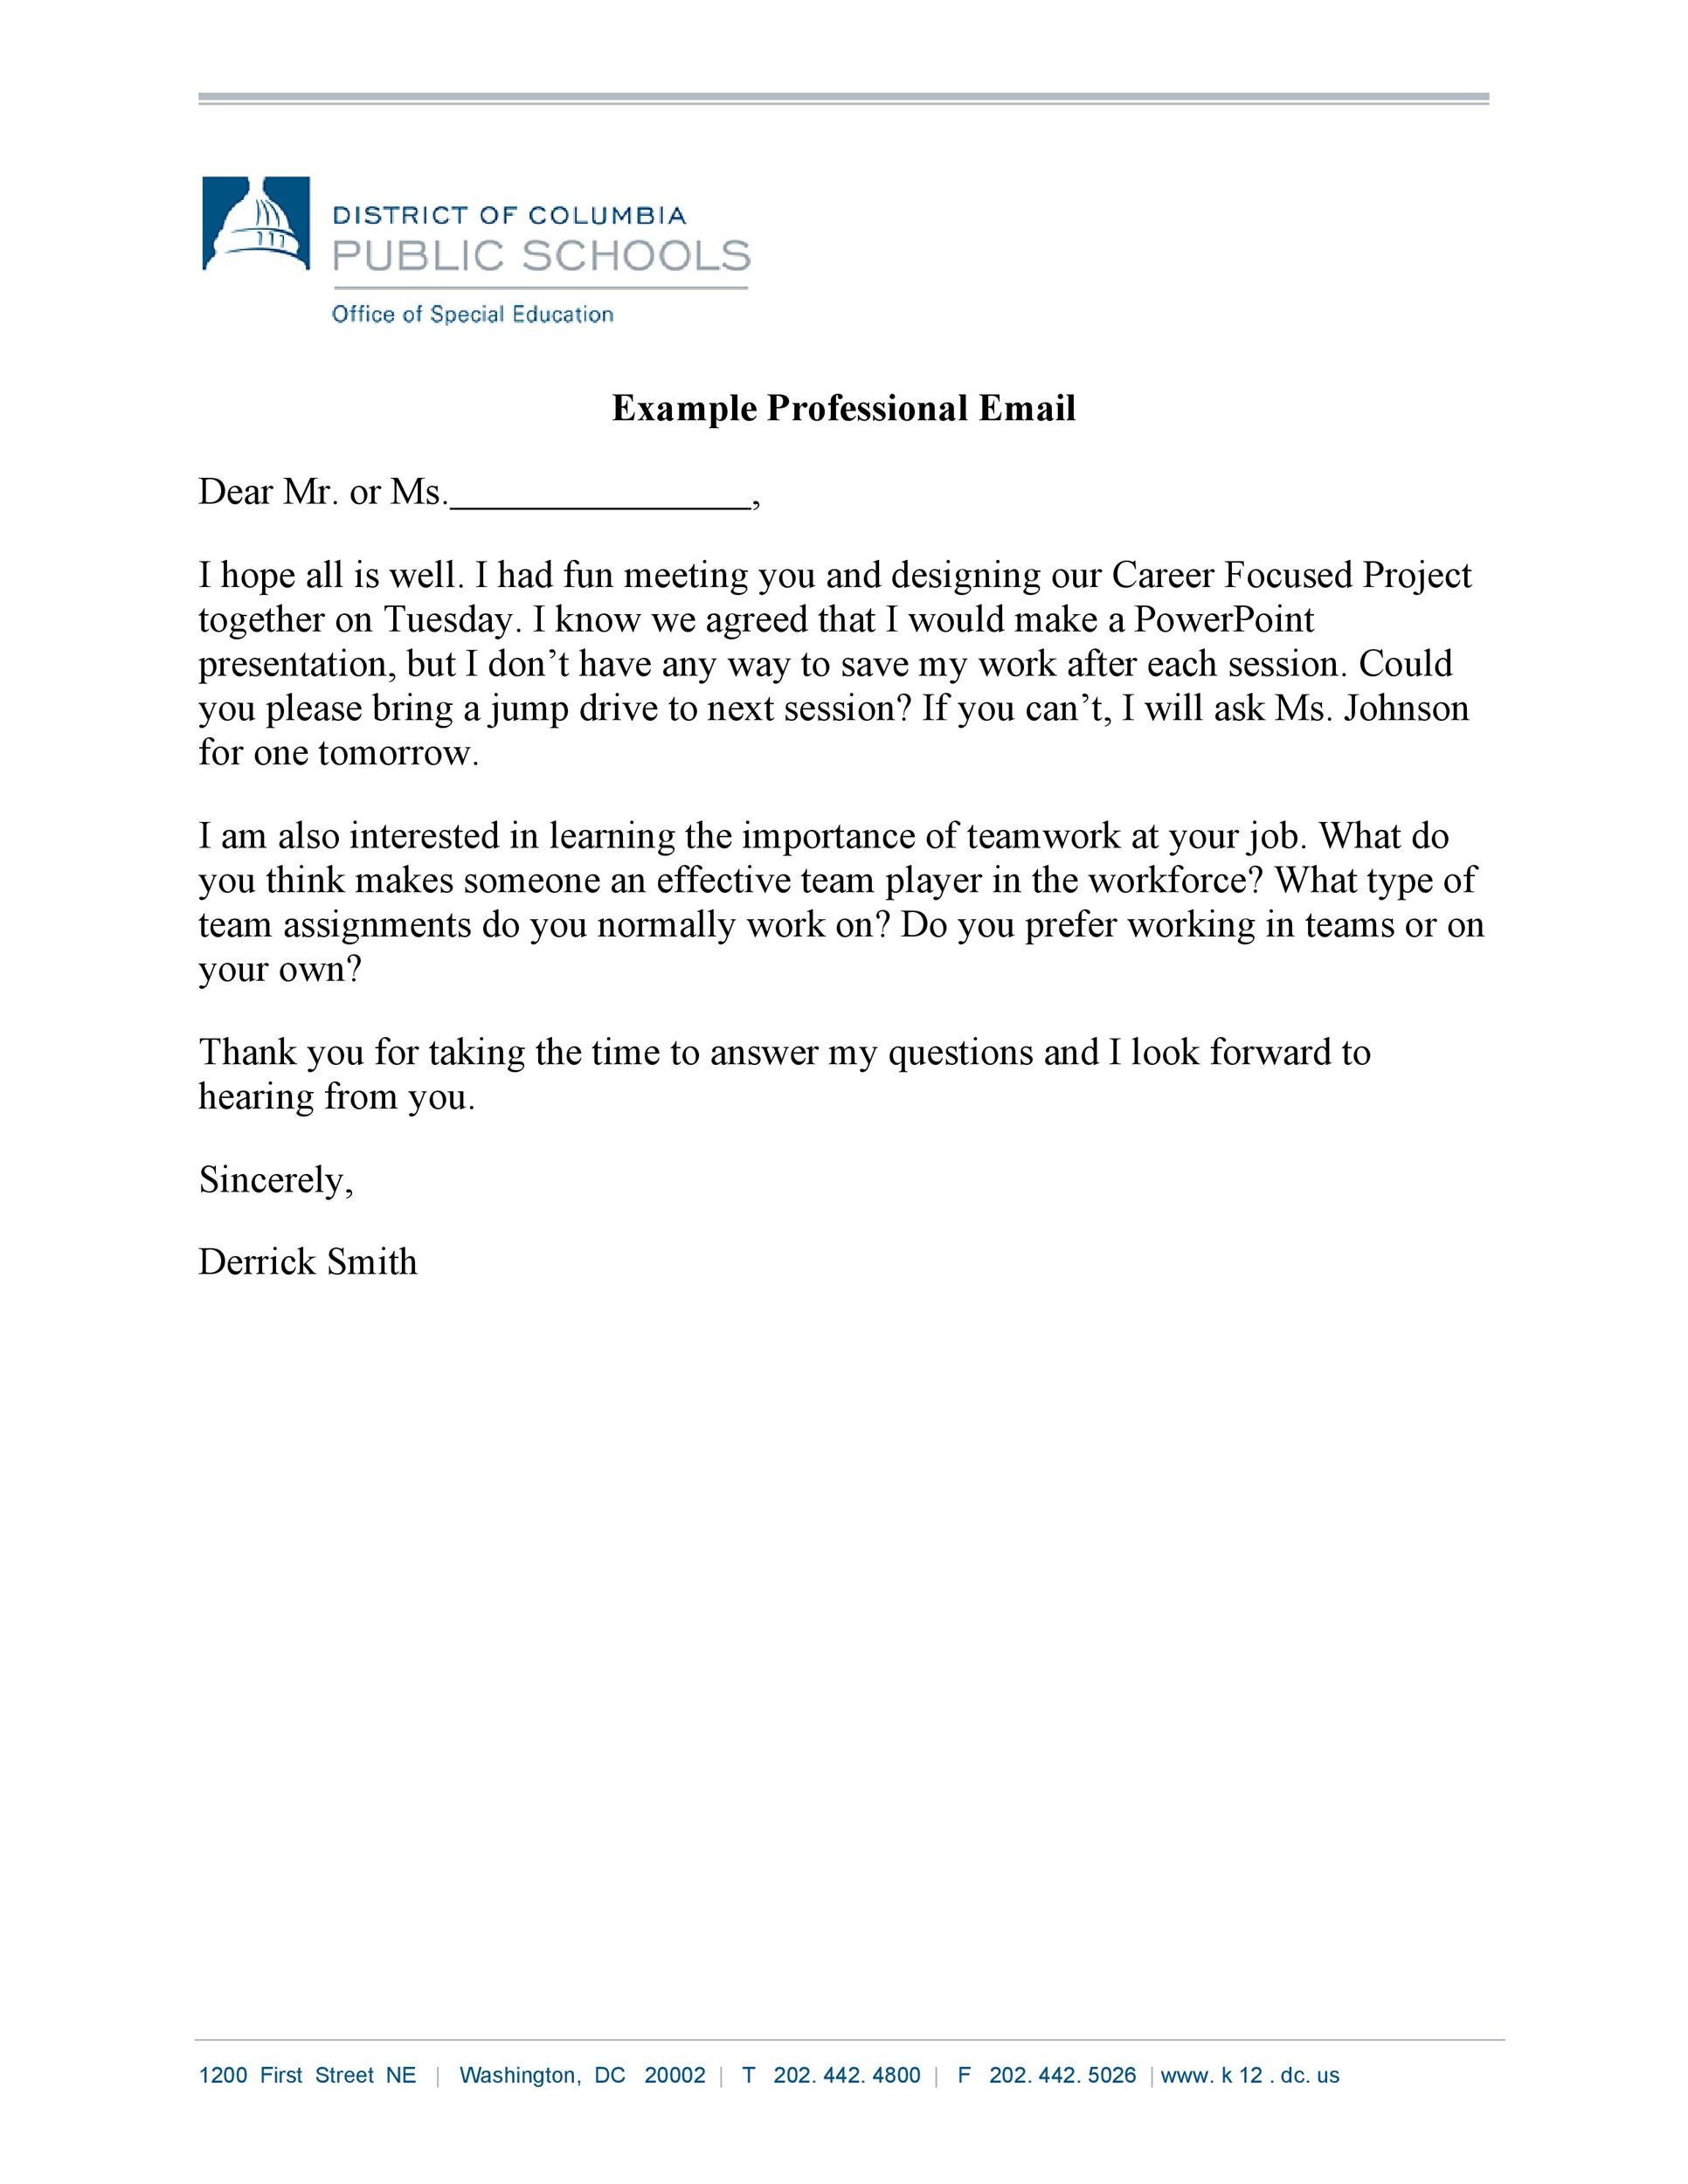 professional email example koni polycode co